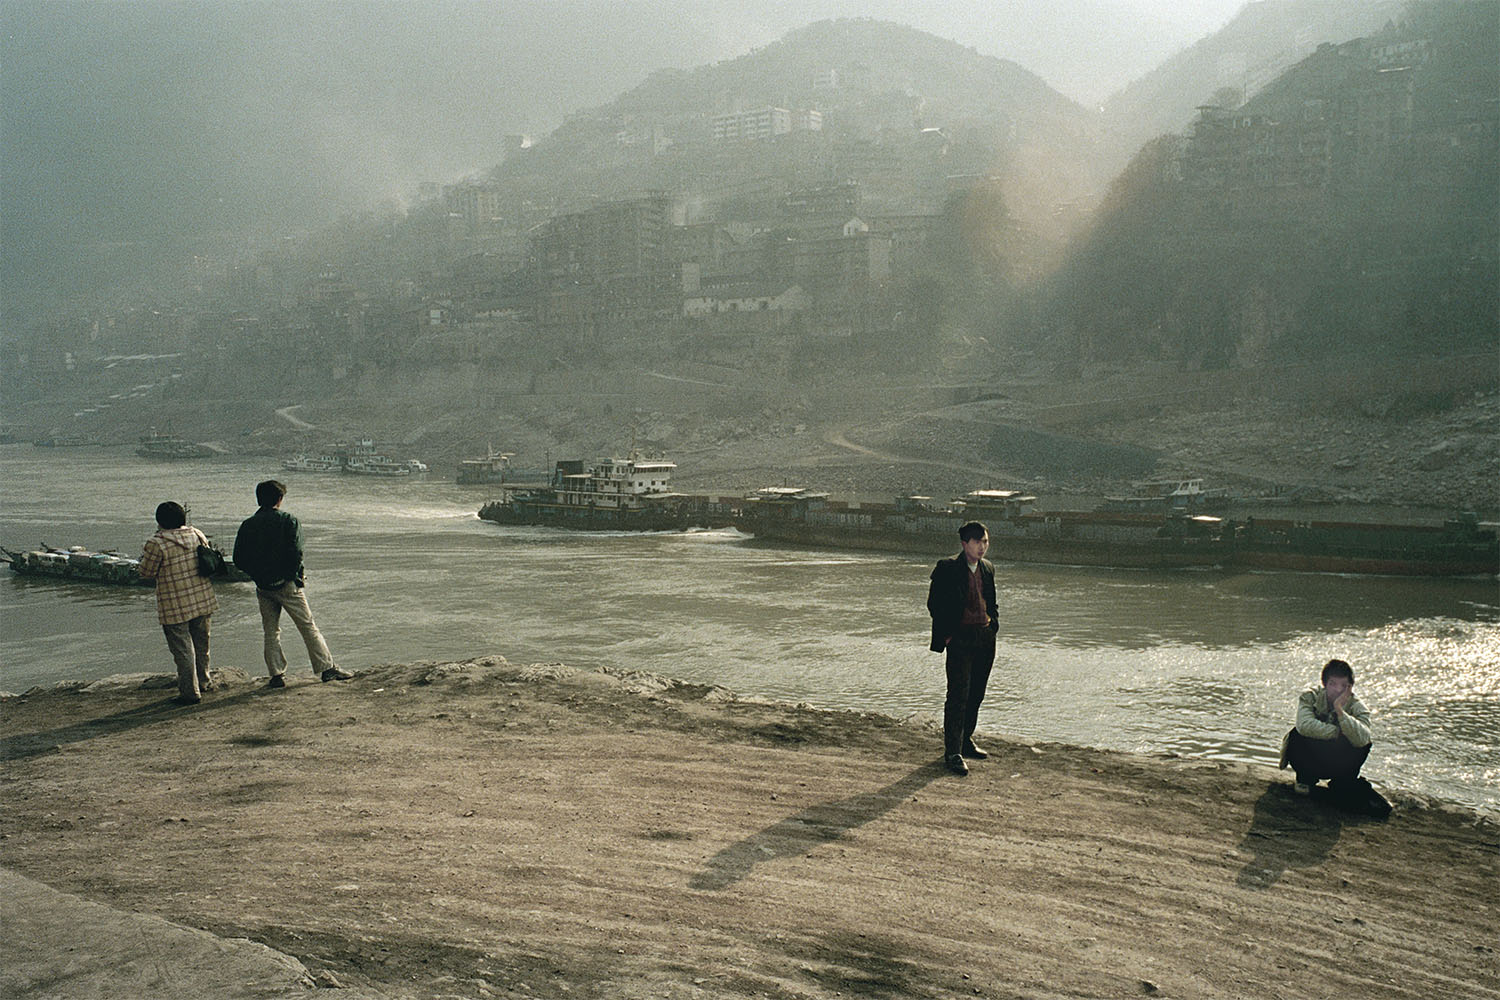 Locals looking at Badong, a town that will eventually be two thirds submerged when the Three Gorges Dam is completed. Badong, China. 2002.